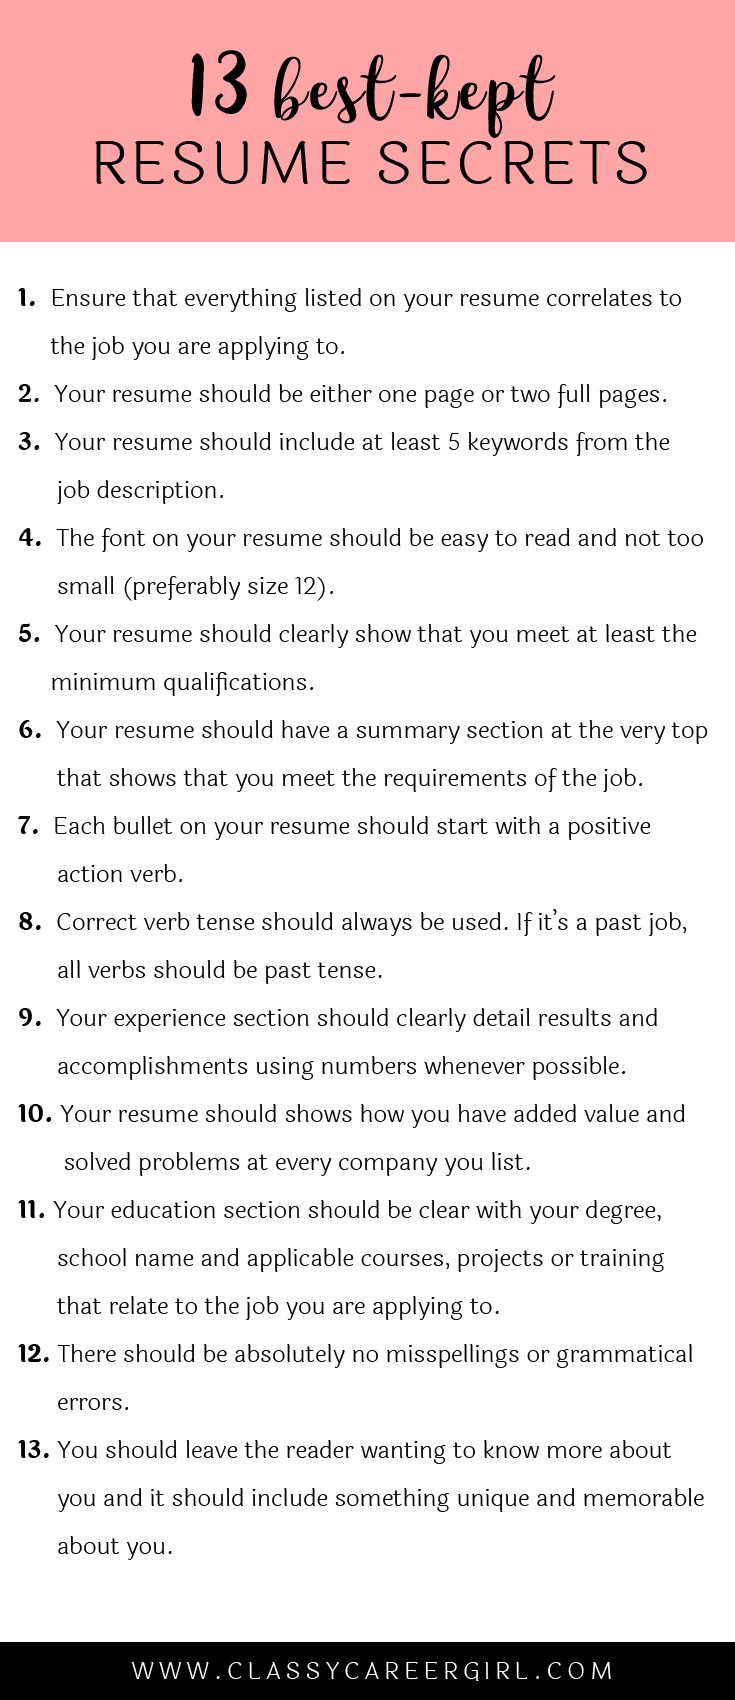 Opposenewapstandardsus  Outstanding  Ideas About Resume On Pinterest  Cv Format Resume  With Licious Some Hiring Managers Will Toss Your Resume Out If You Dont Know These  With Breathtaking Resume My Career Also Reading Specialist Resume In Addition It Tech Resume And Resume Objective Accounting As Well As Resume Electrical Engineer Additionally Business Resume Objective Examples From Pinterestcom With Opposenewapstandardsus  Licious  Ideas About Resume On Pinterest  Cv Format Resume  With Breathtaking Some Hiring Managers Will Toss Your Resume Out If You Dont Know These  And Outstanding Resume My Career Also Reading Specialist Resume In Addition It Tech Resume From Pinterestcom